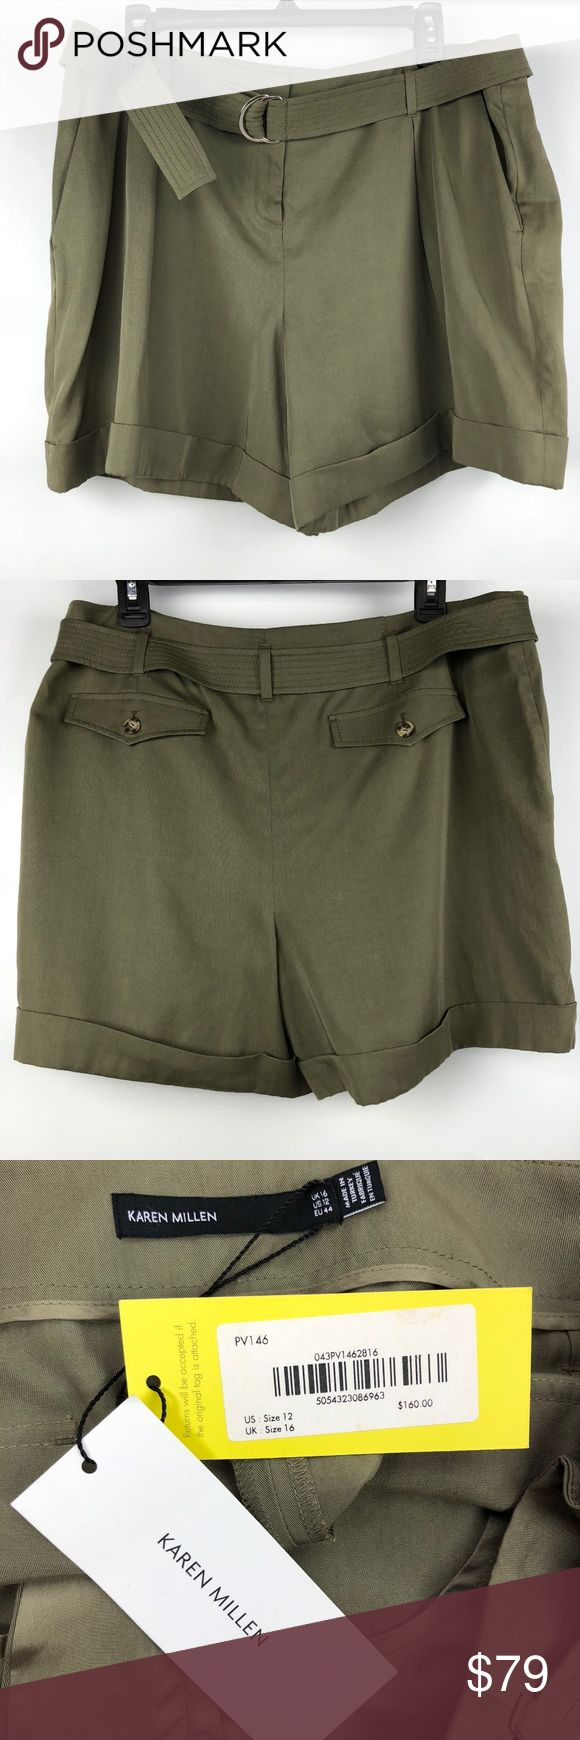 """Karen Millen Olive Free Dressy Shorts Sz 12 Posh Thrift Shop  Thanks for stopping by!!!  Item: Karen Miller Women's Size 12 Olive Green Dressy Shorts Belted Folded Hem Pleated  Condition: Brand new with tags.  Please refer to images for more details about this item. If you have any questions please feel free to ask. All measurements are taken with the item laying and are approximate.   Waist 19"""" Karen Millen Shorts"""